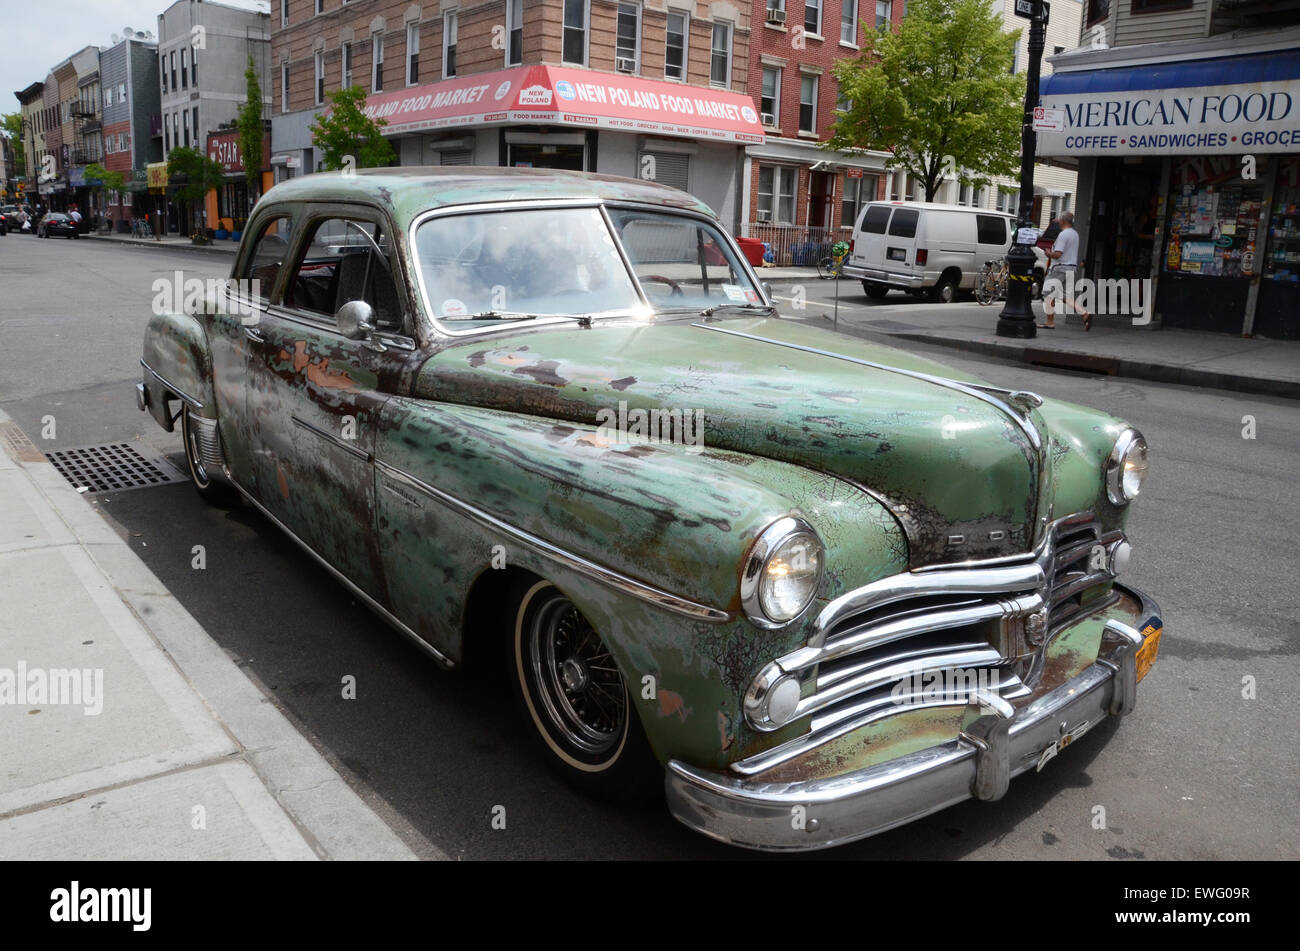 Dodge Motor Car Vintage Old American New York Williamsburg